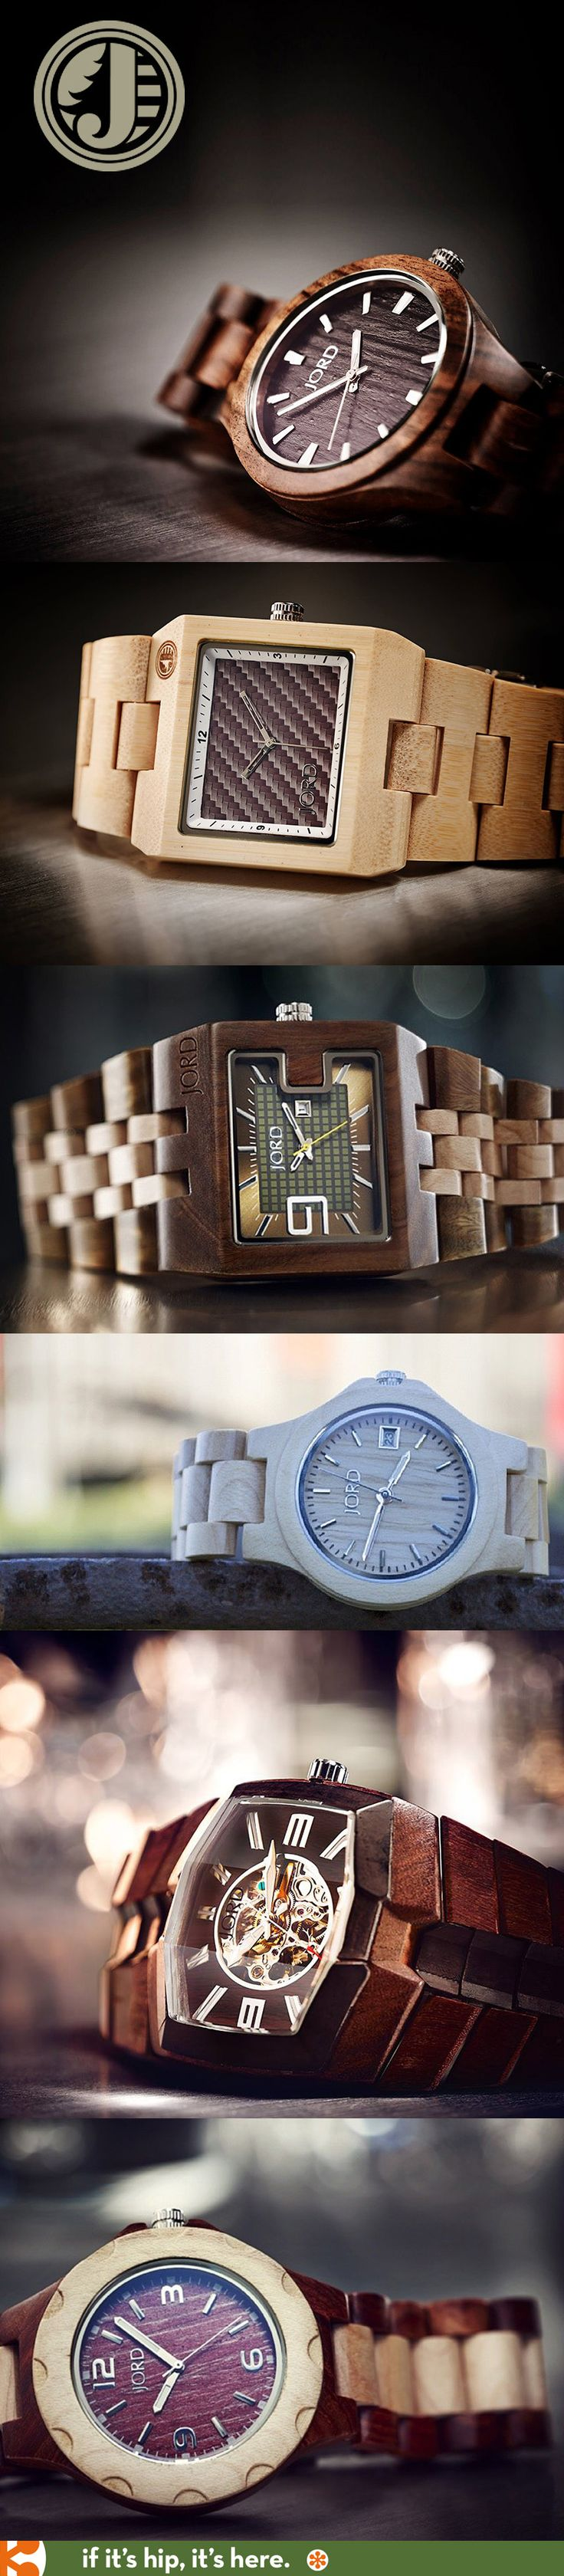 100% Natural Wood Watches for men and women. I saw these in Sturgis, SD. Absolutely beautiful watches! #thestyleything #theything